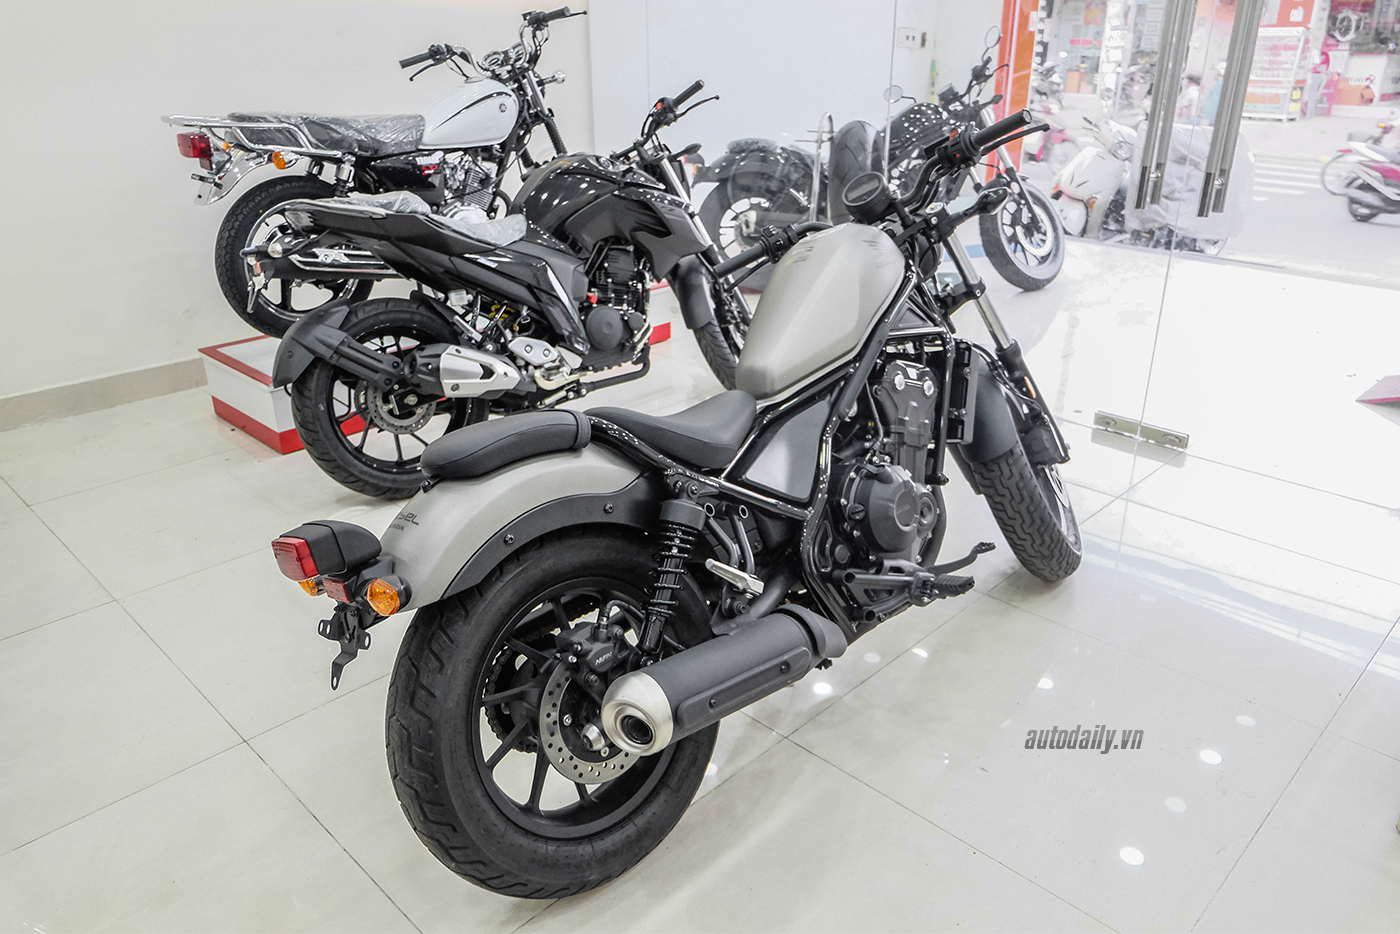 honda-rebel-500-abs-2017-10.jpg